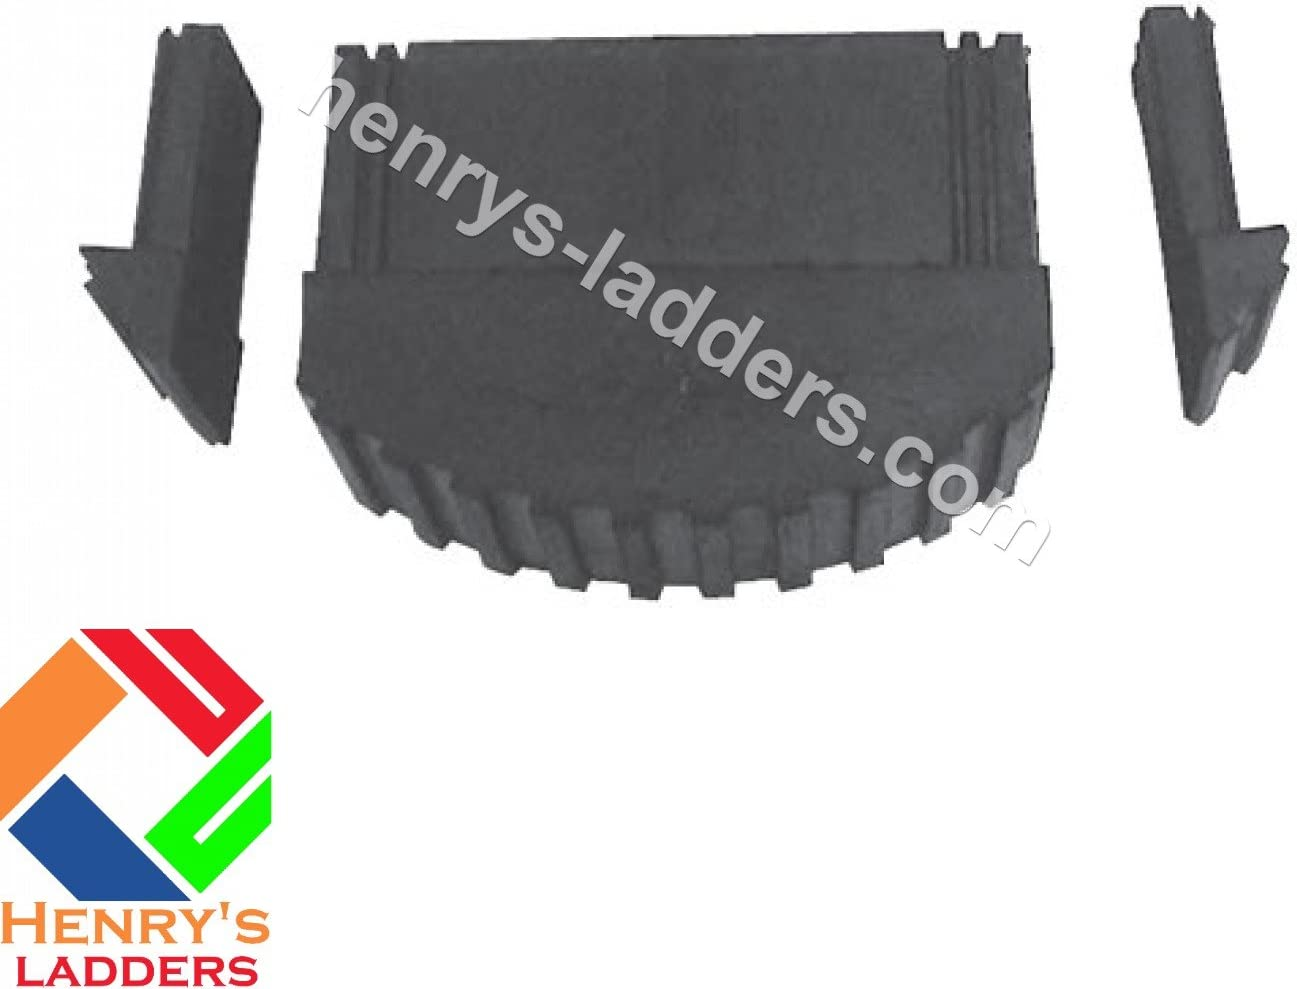 Brand new high density solid rubber ladder feet will fit into any Zarges box-frame ladders Can be cut to any size to a max width 84mm Free Delivery in Pack of 4 Henry/'s Replacement Rubber Ladder Feet for Zarges Box Section Ladders by Laddermat.